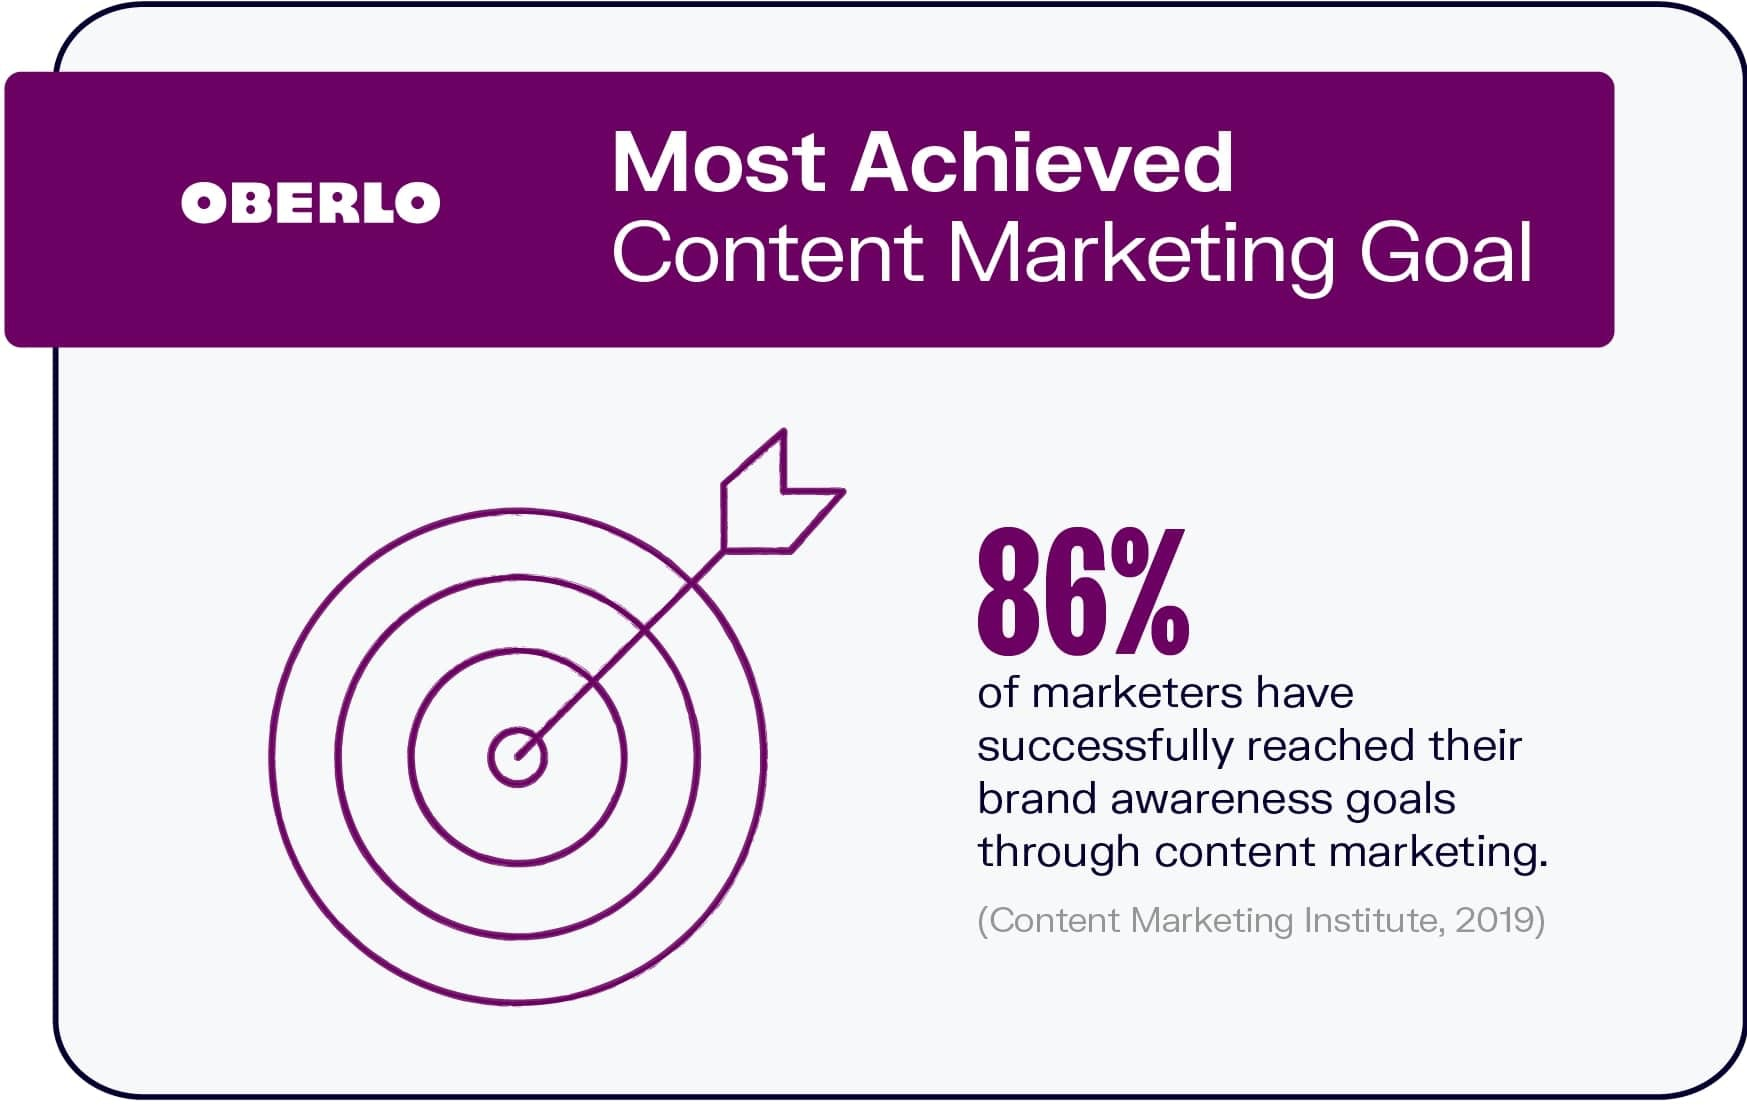 Most Achieved Content Marketing Goal